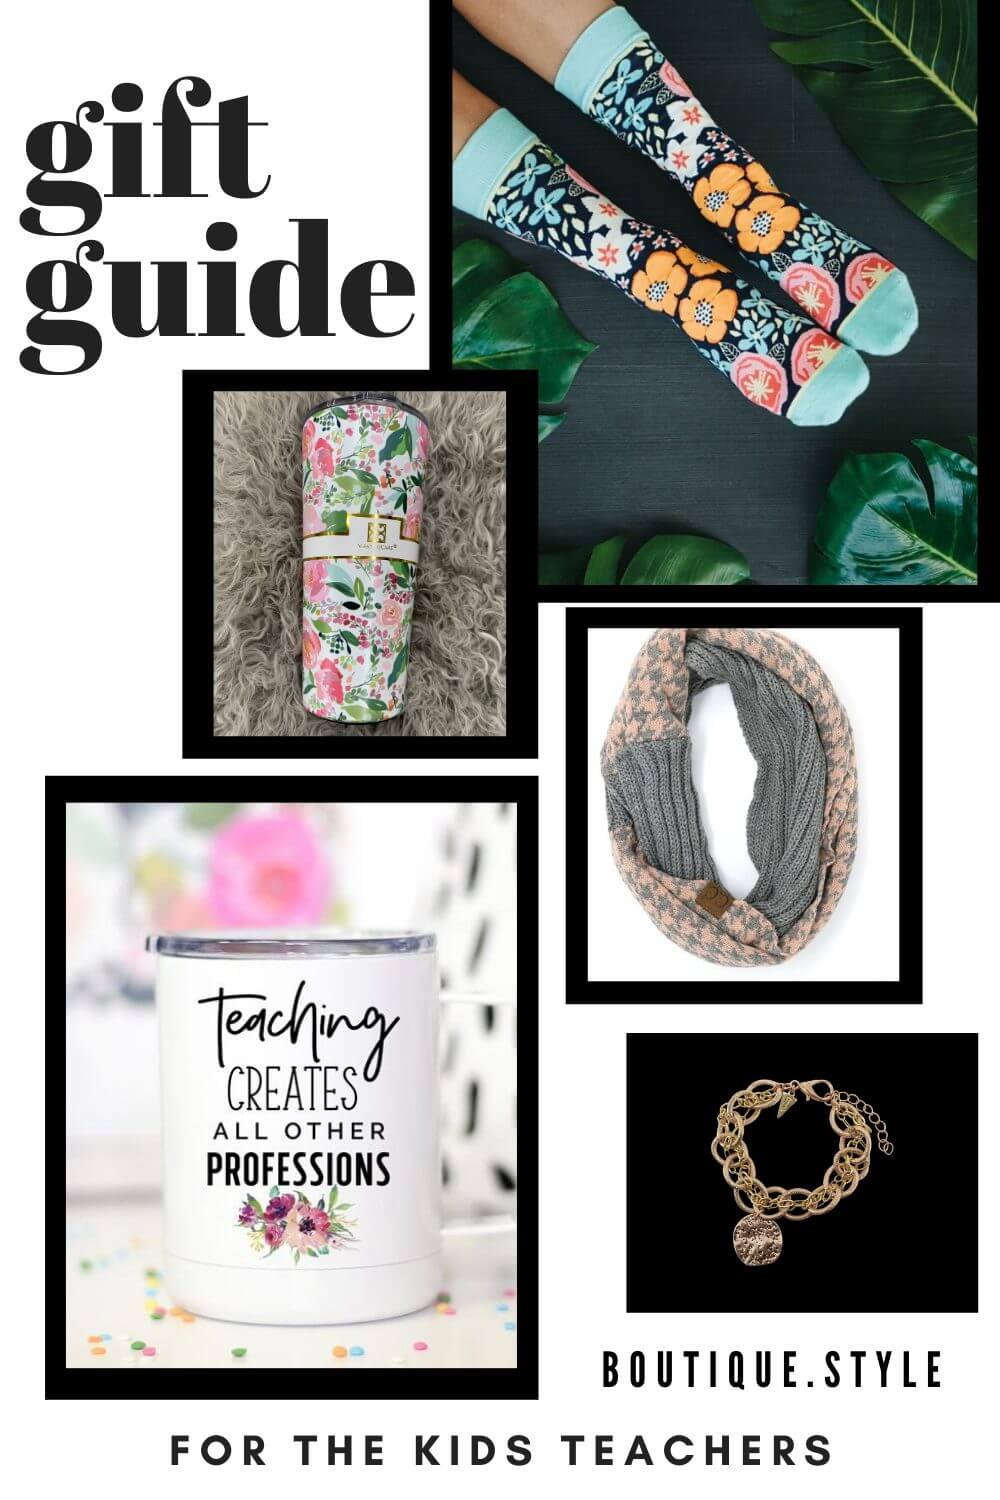 Gift Guide: Gifts for The Kid's Teacher